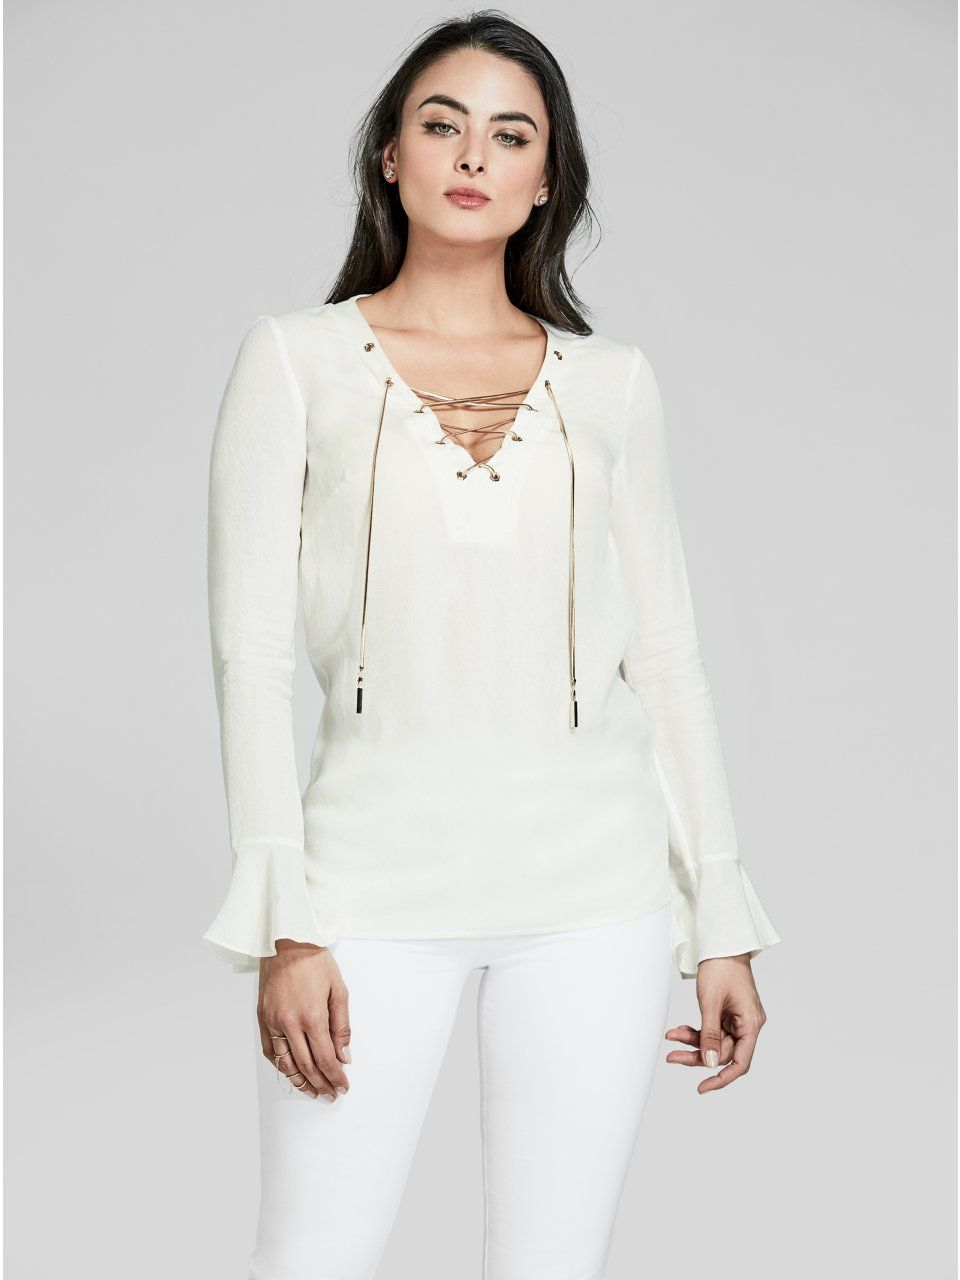 a34a31ab95a95 Guess by Marciano Women s Lace-Up Long-Sleeve Blouse